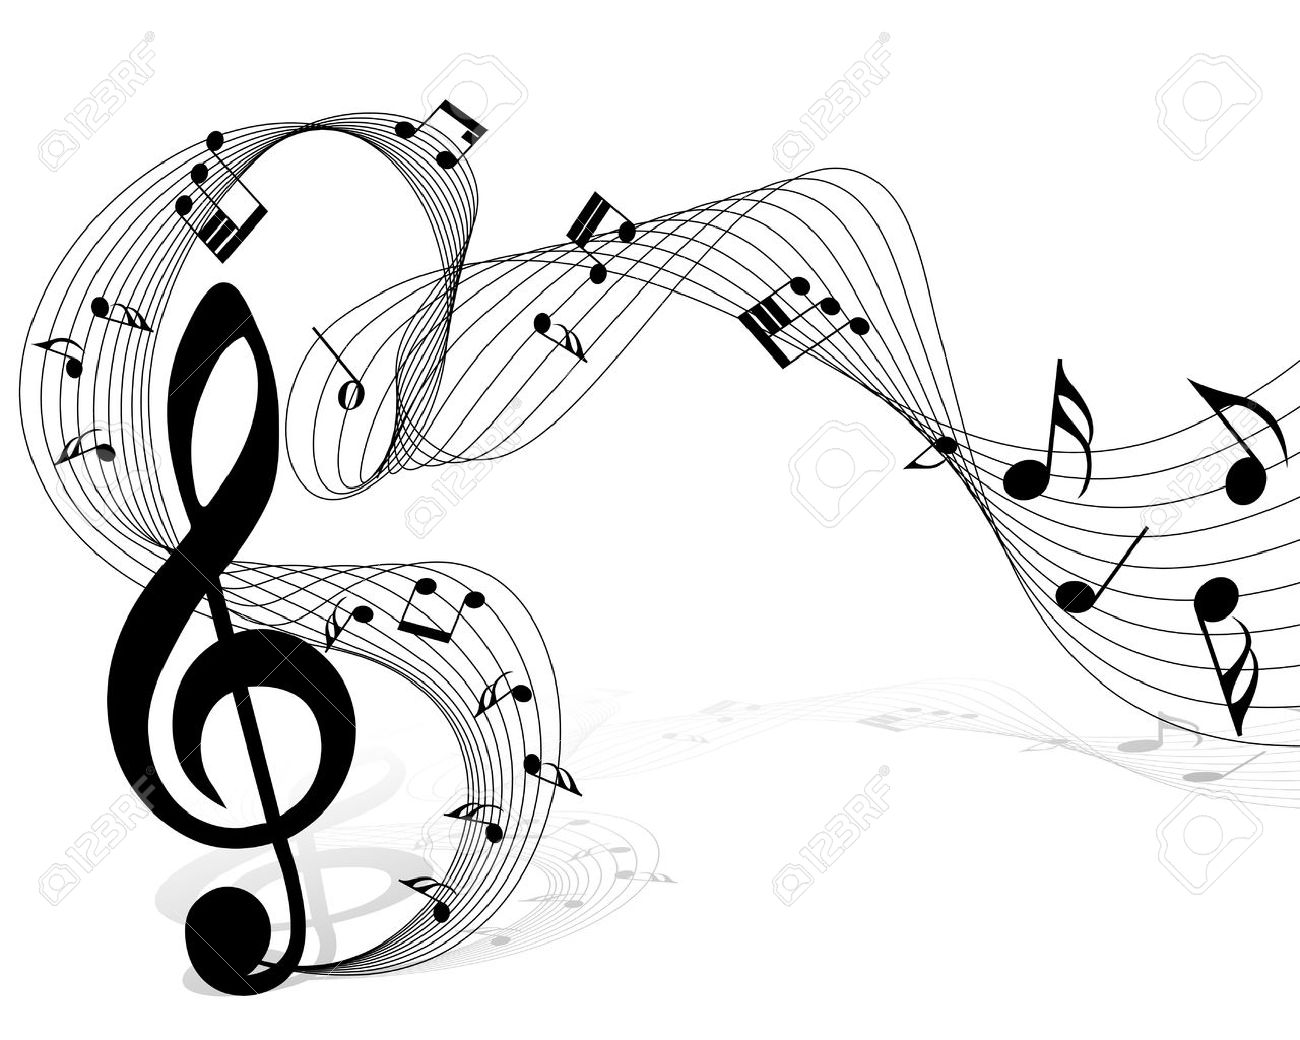 Vector musical notes staff background for design use - 10880579